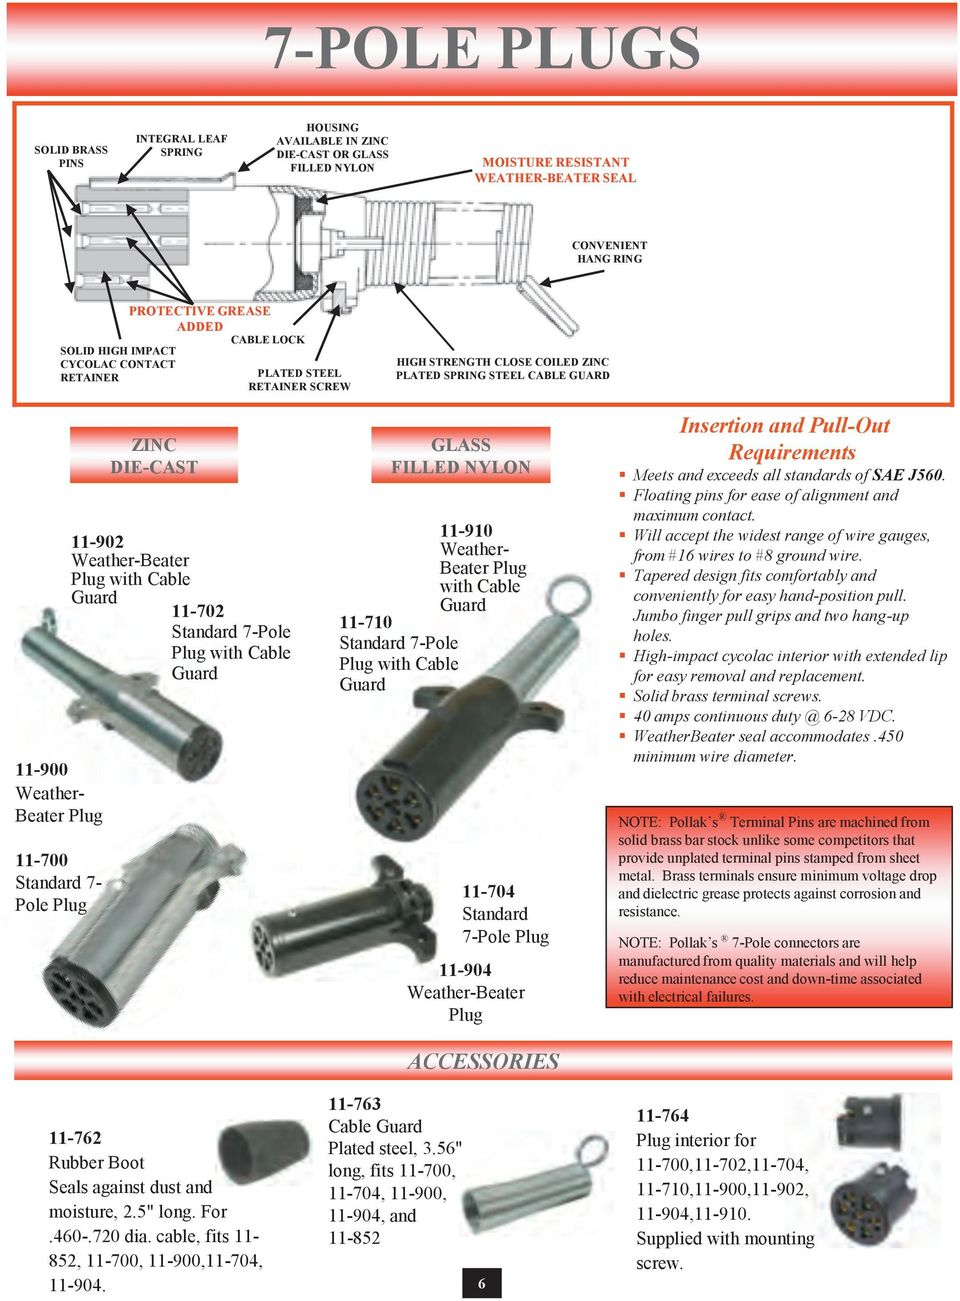 Pollak A Stoneridge Company Engineered Solutions To Design Standard Wiring Diagram 7 Pole Plug Zinc Die Cast 11 902 Weather Beater With Cable Guard